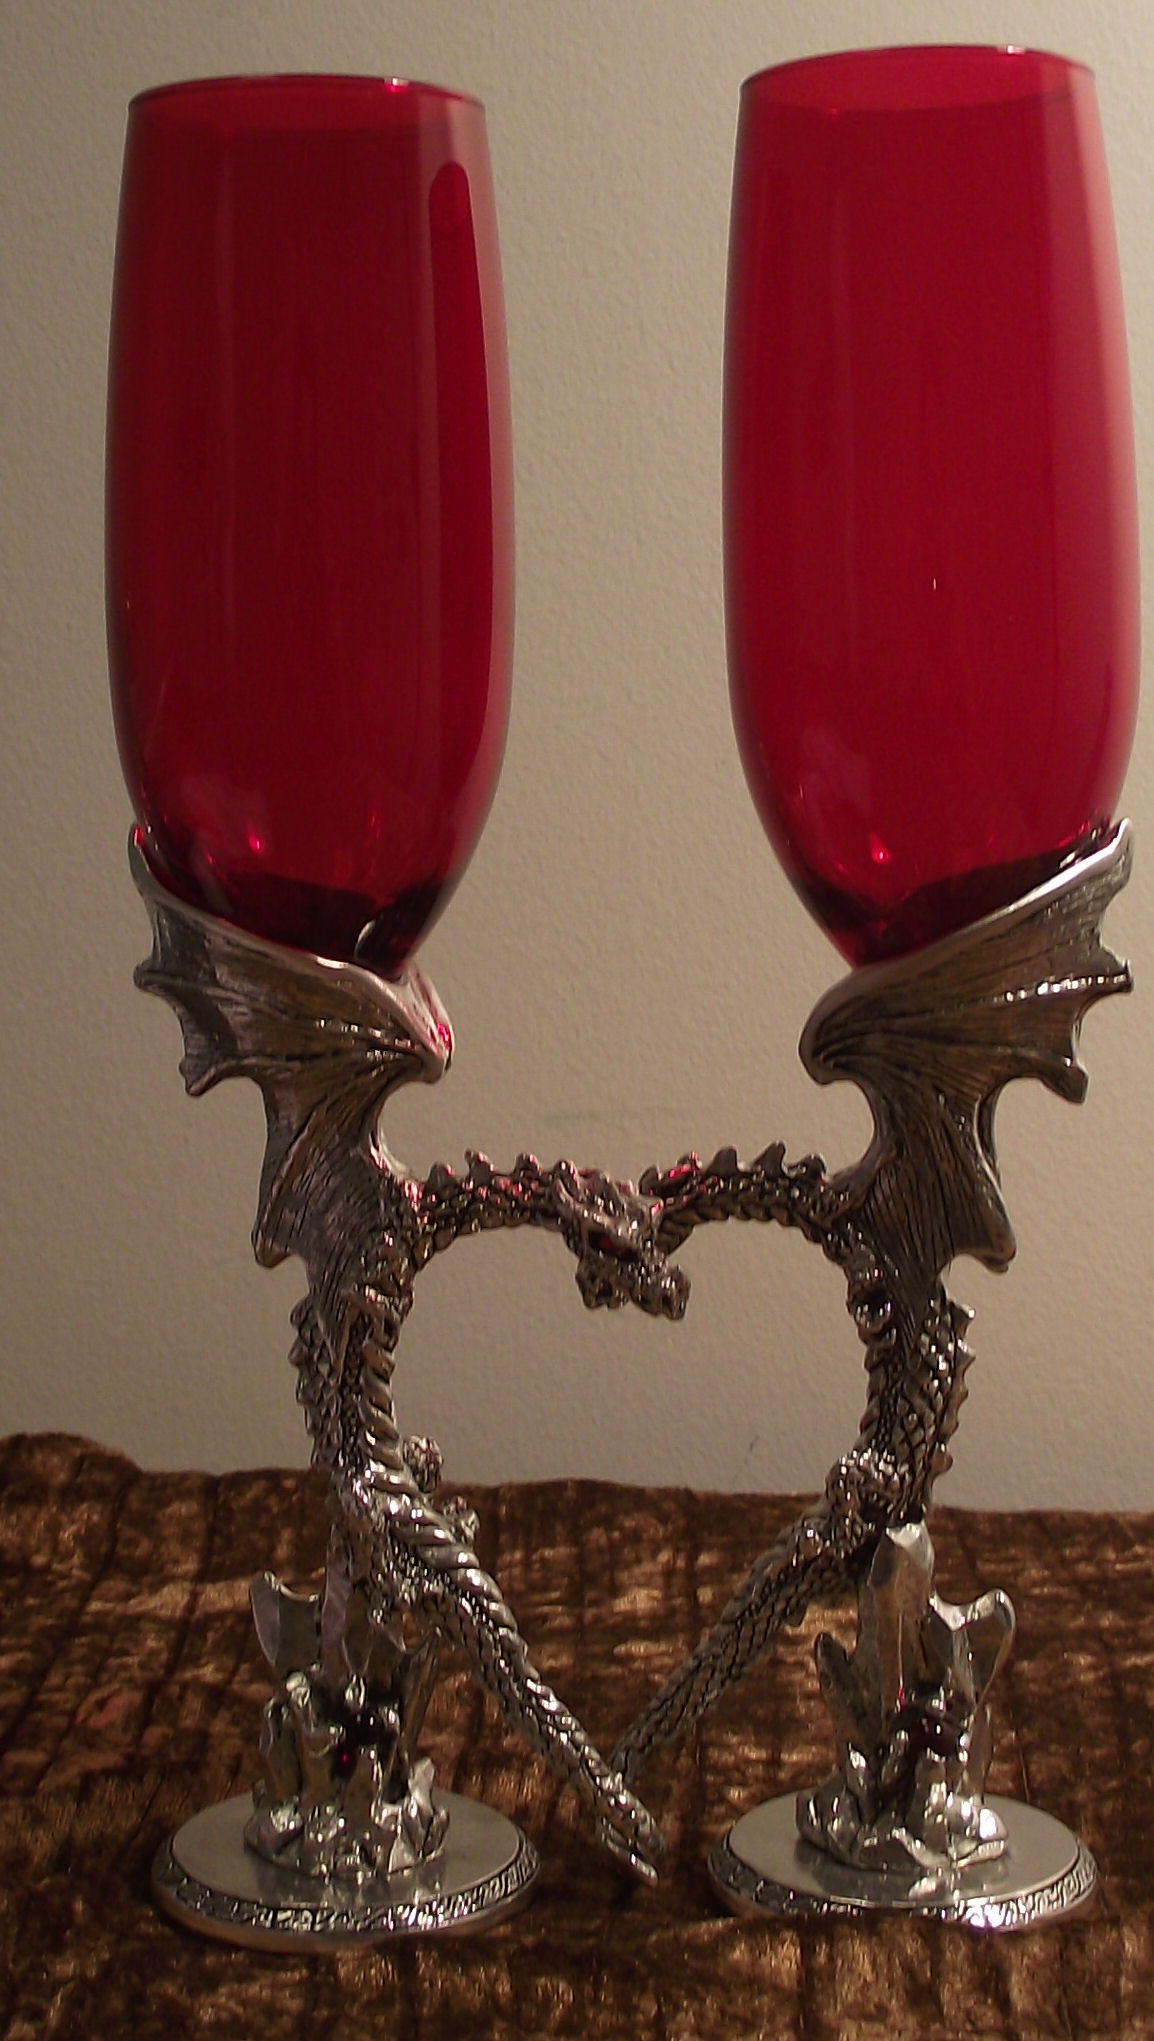 Dragon Heart Glasses Pewter Toasting Glasses At Dhg